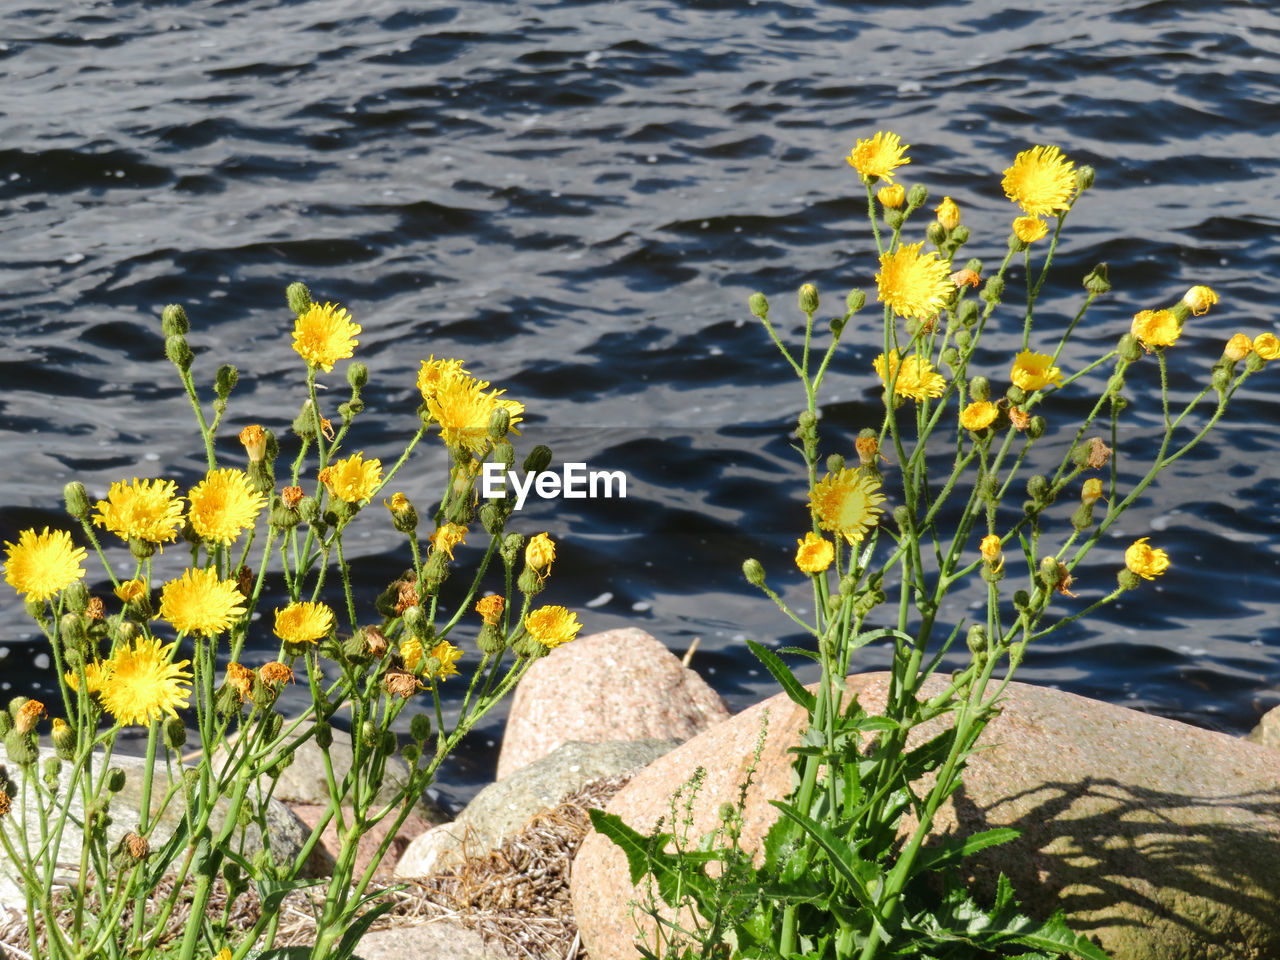 water, nature, flower, rock - object, yellow, no people, plant, day, outdoors, sunlight, growth, tranquility, lake, beauty in nature, close-up, fragility, freshness, flower head